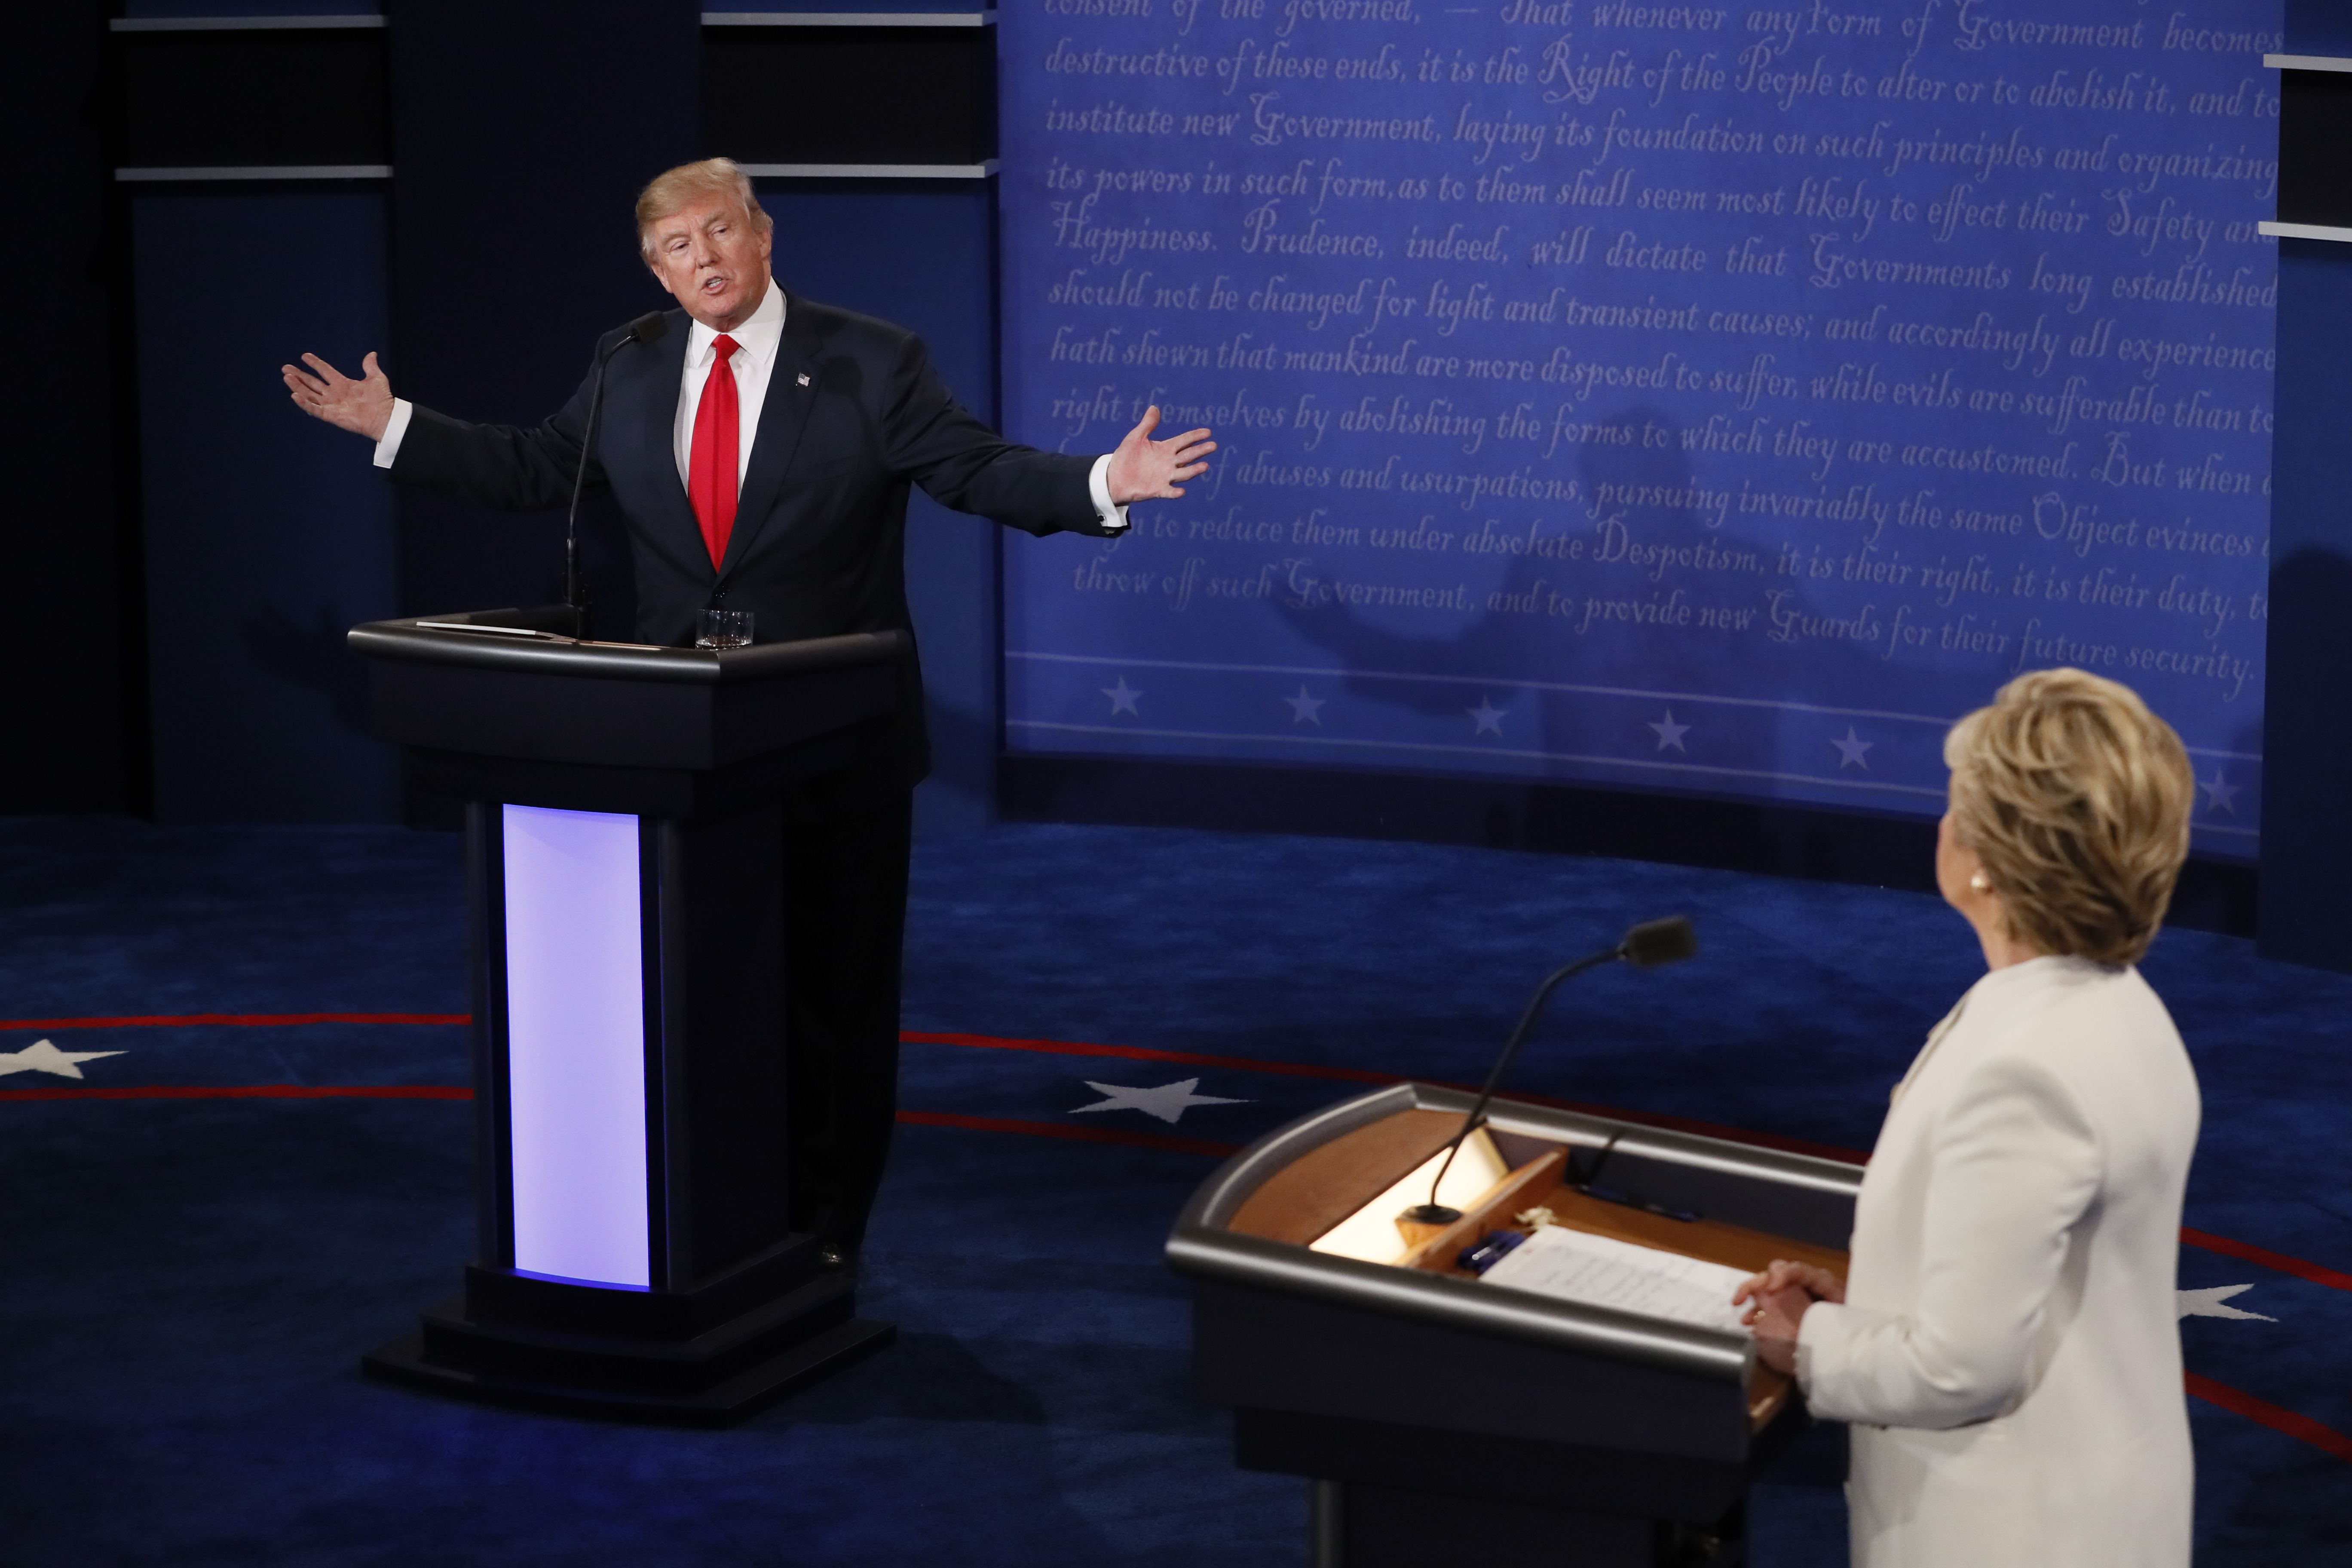 Republican presidential nominee Donald Trump speaks as Democratic presidential nominee Hillary Clinton (R) looks on during the final presidential debate at the Thomas & Mack Center on the campus of the University of Las Vegas in Las Vegas on Oct. 19, 2016.